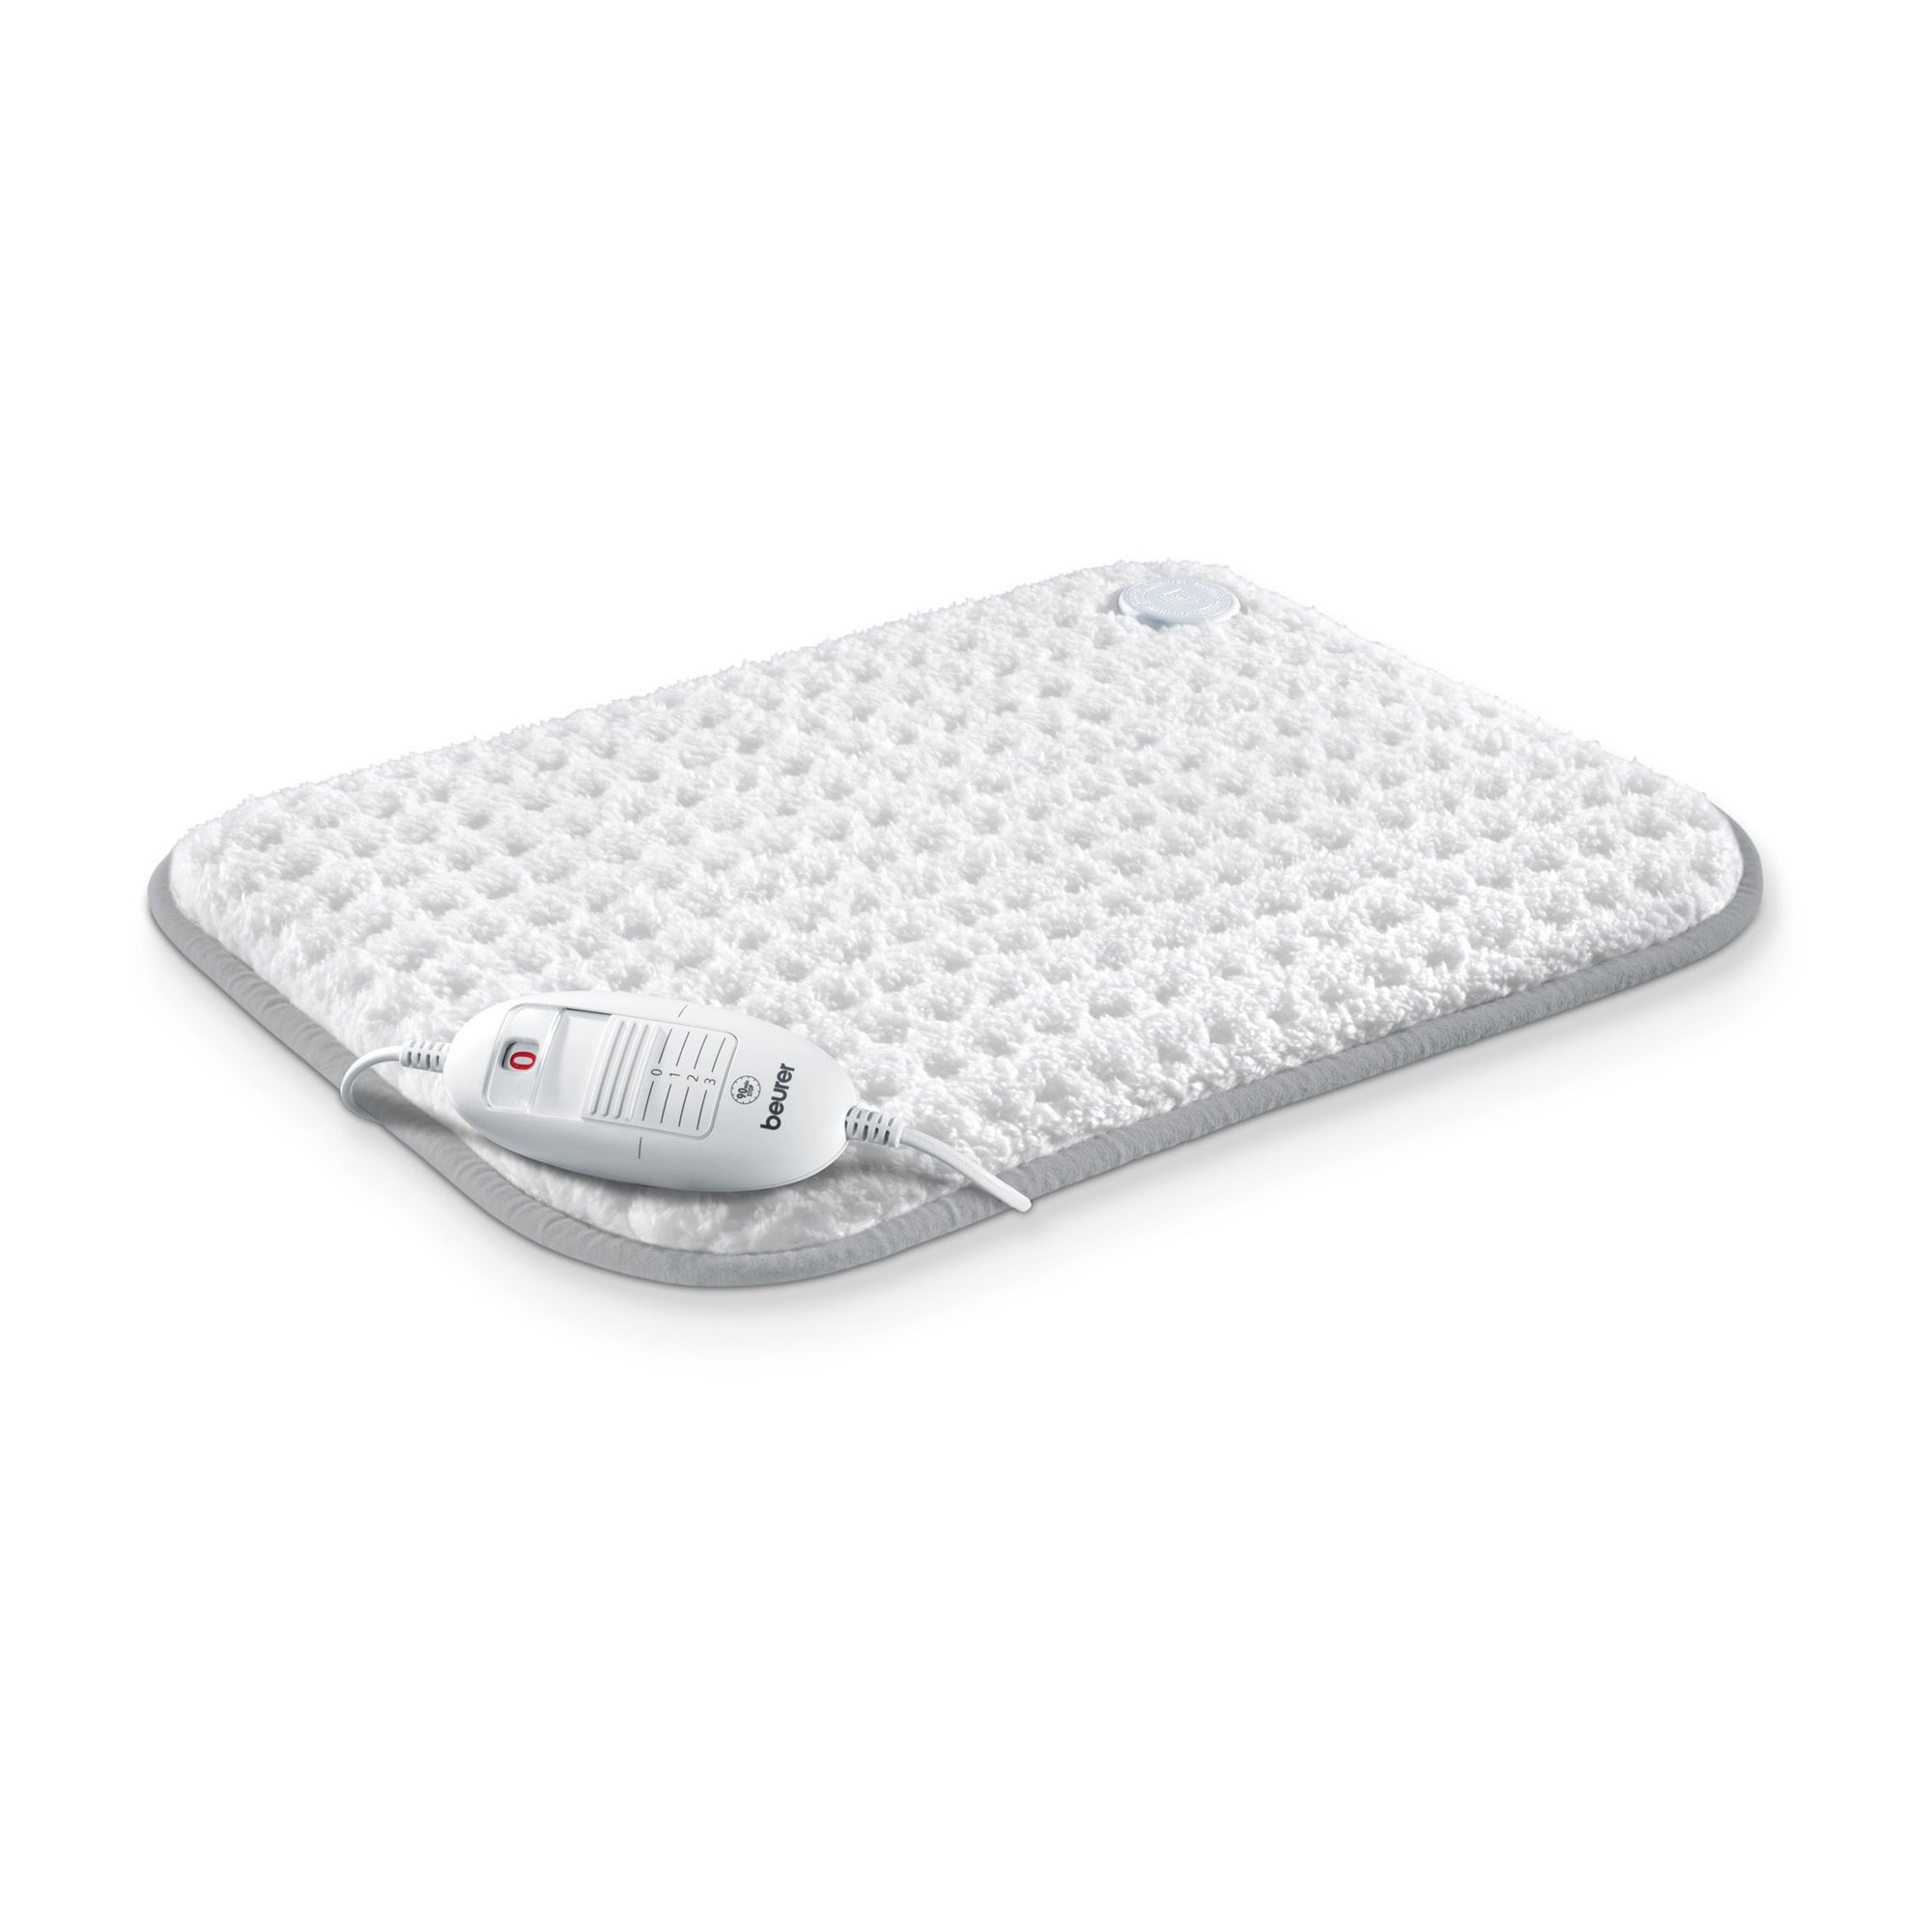 Image of Beurer Super Fluffy Electric Heat Pad